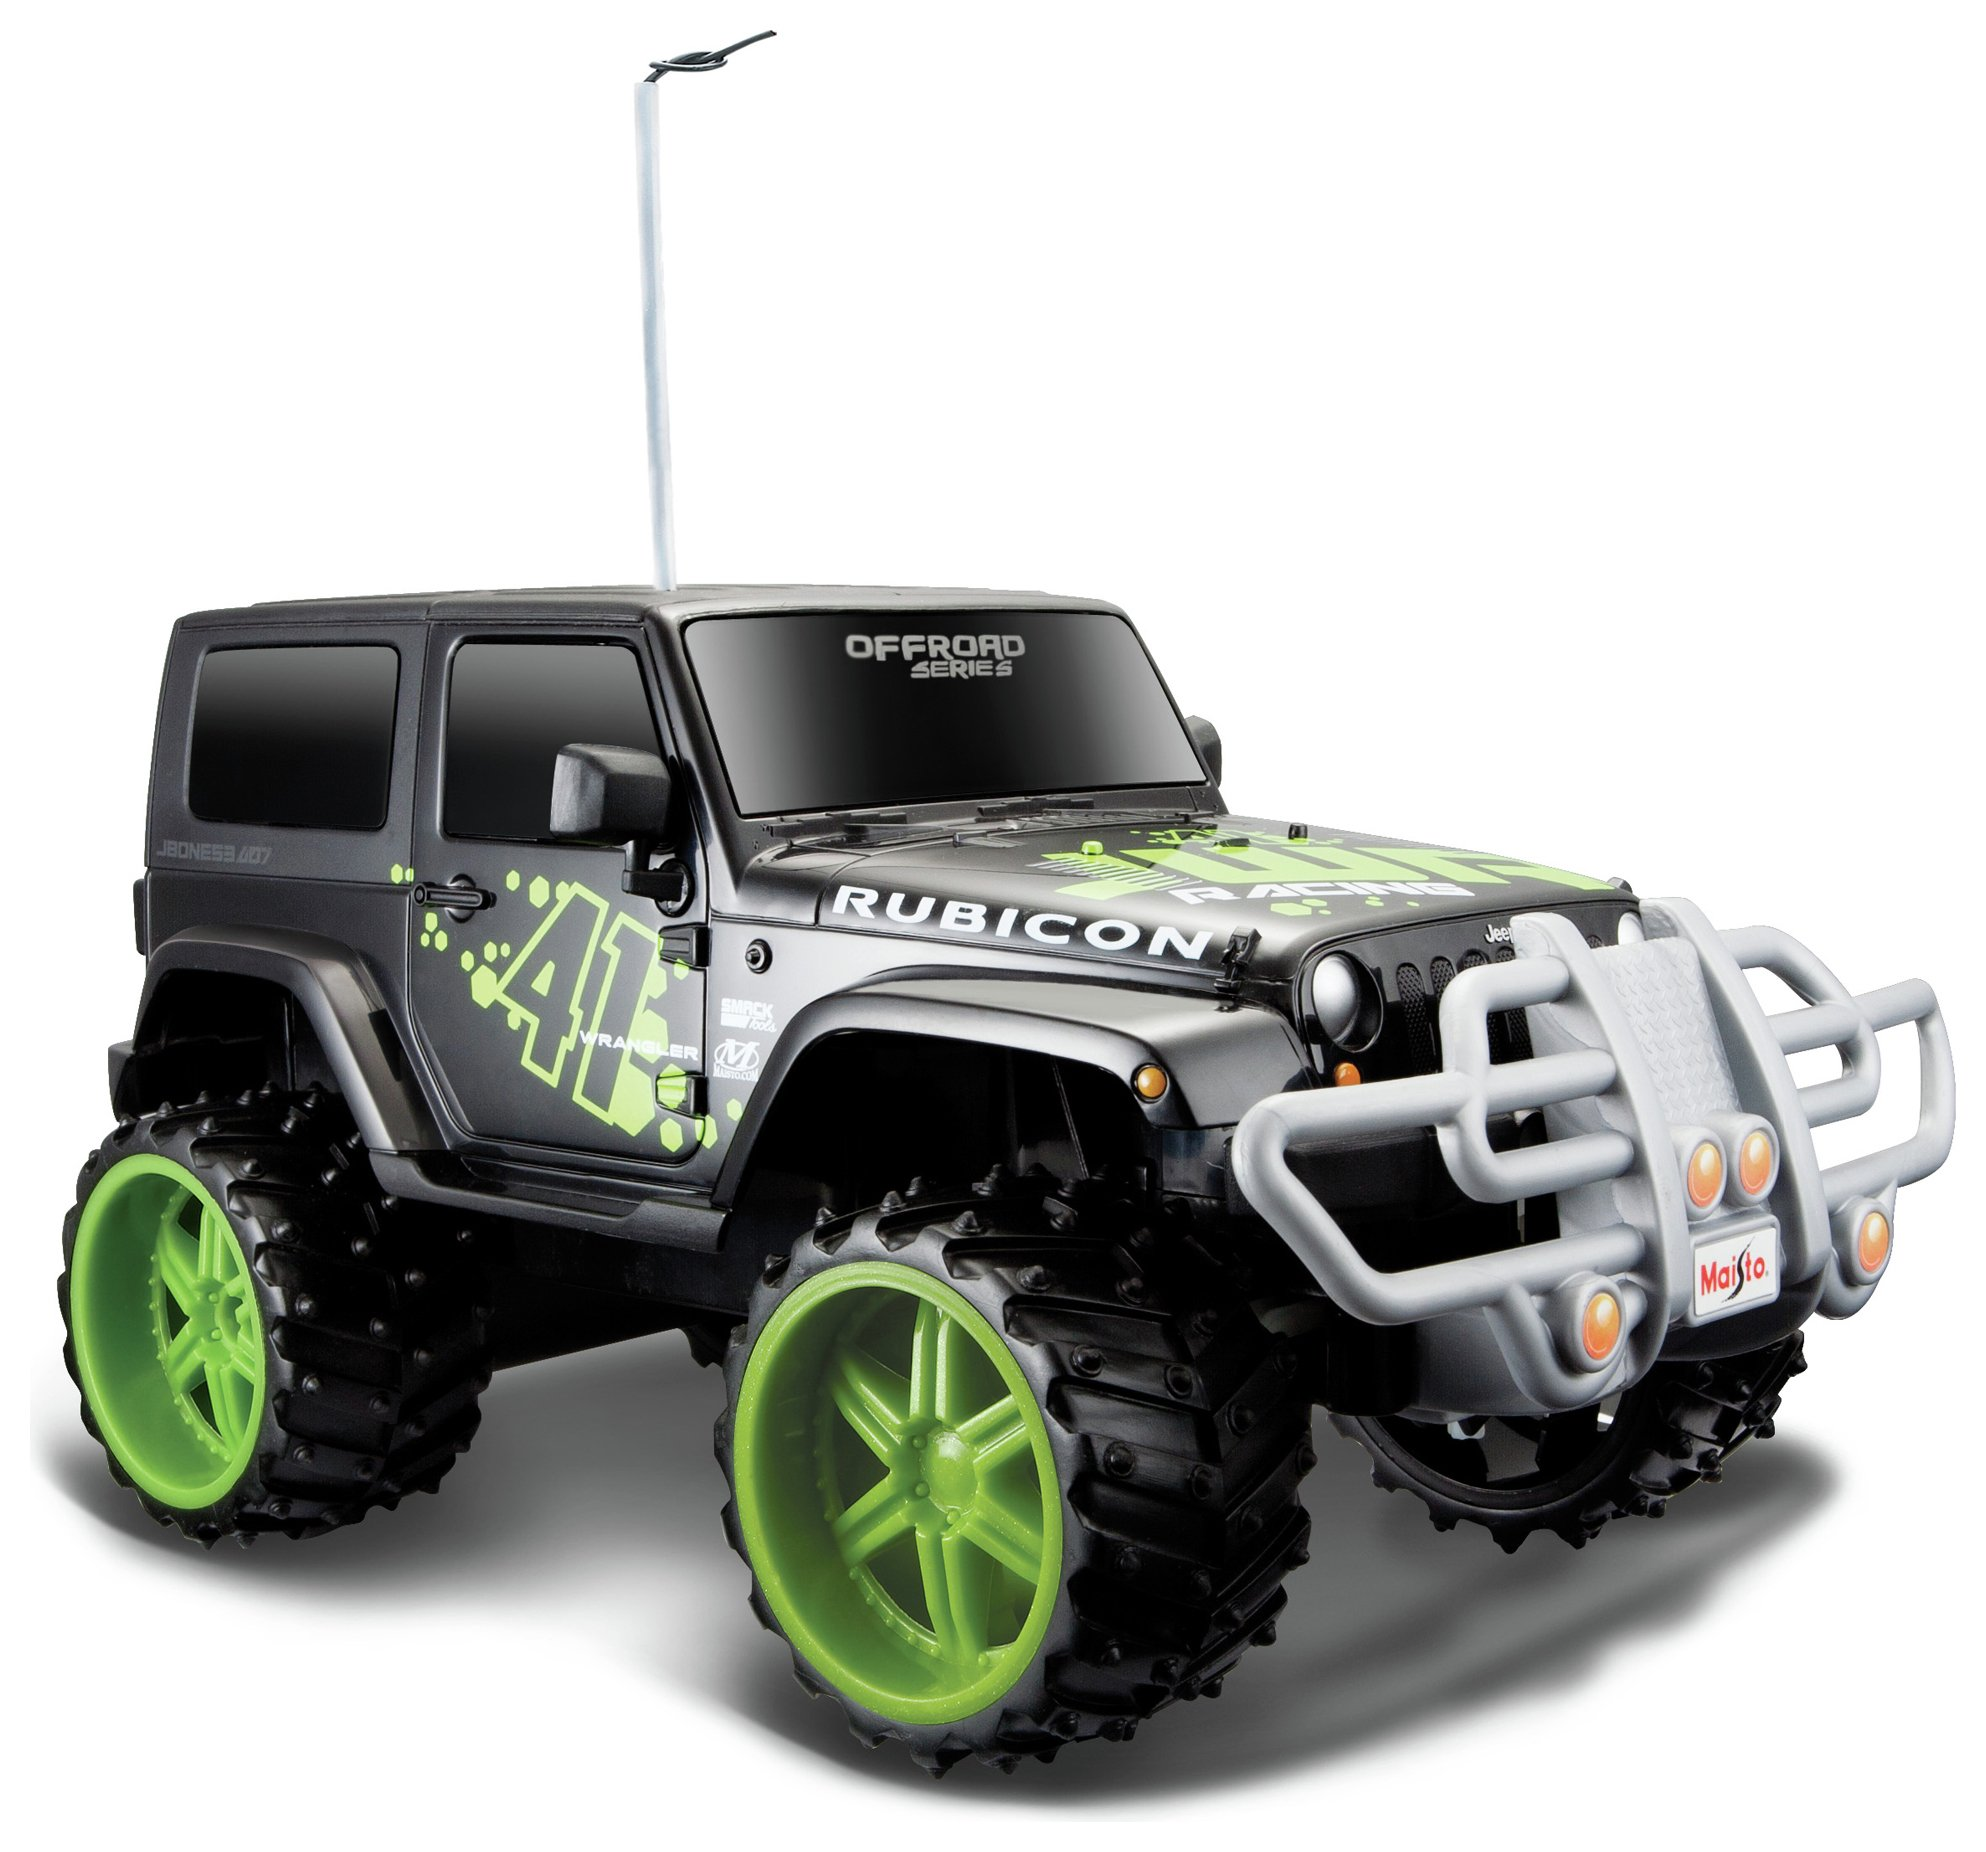 Image of 1:16 RC Jeep Wrangler Rubicon.